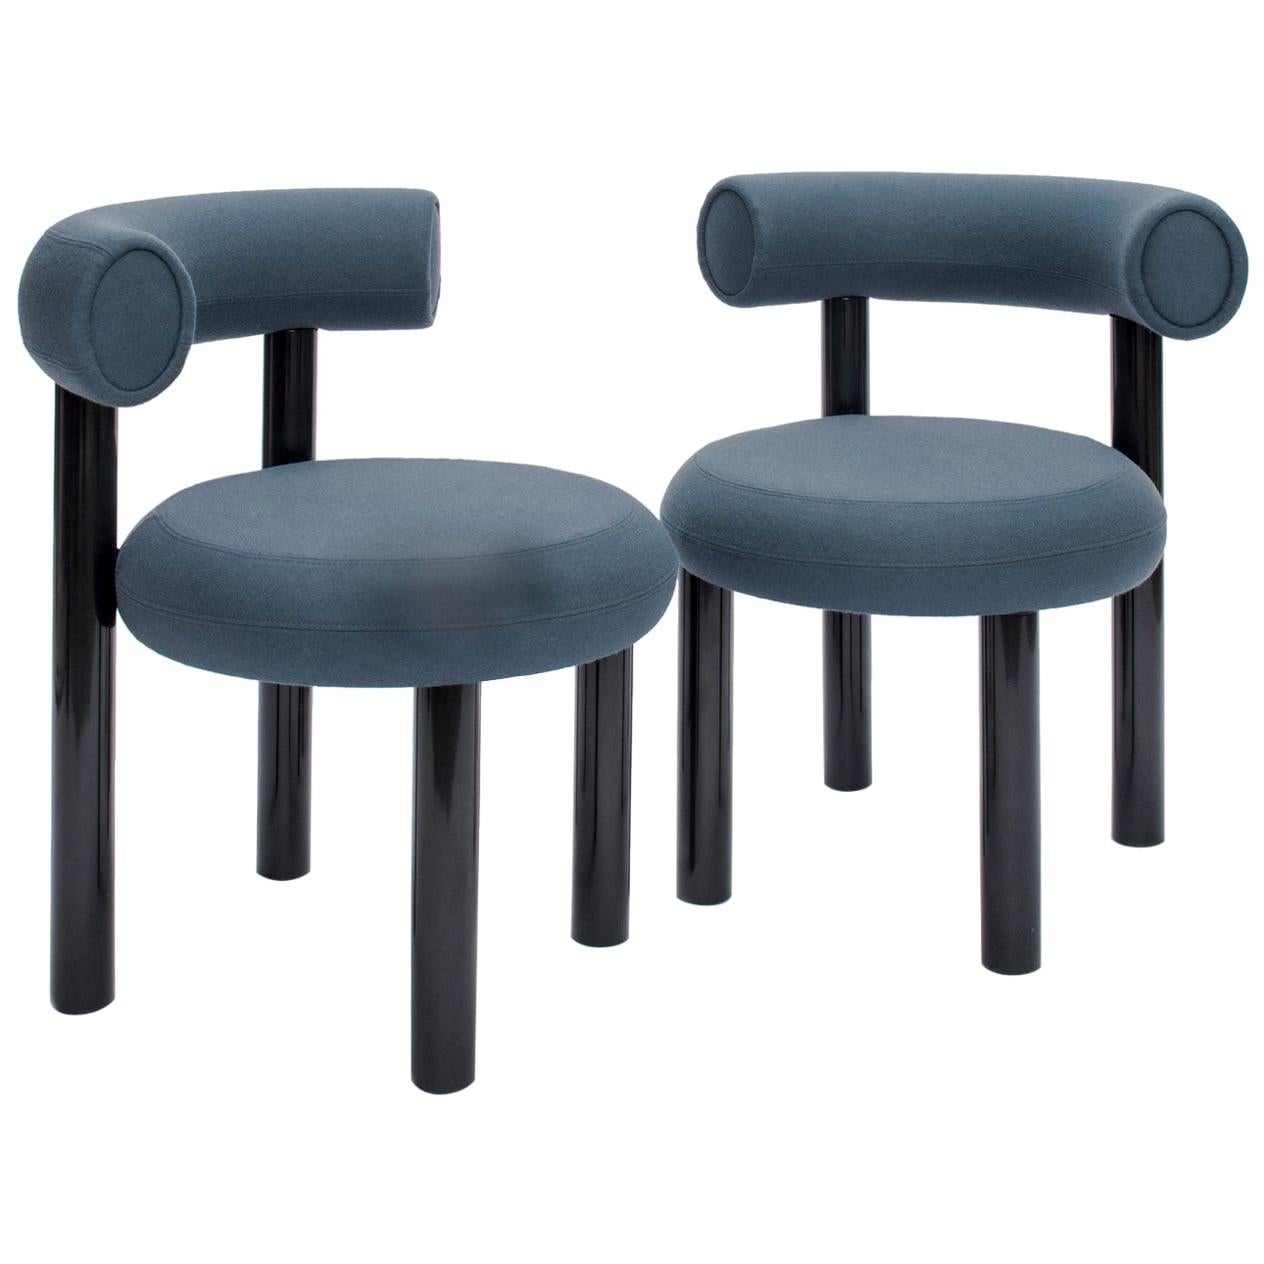 Blue Gray Upholstery with Metal Gloss Lacquer Leg Dining Chair, Tom Dixon